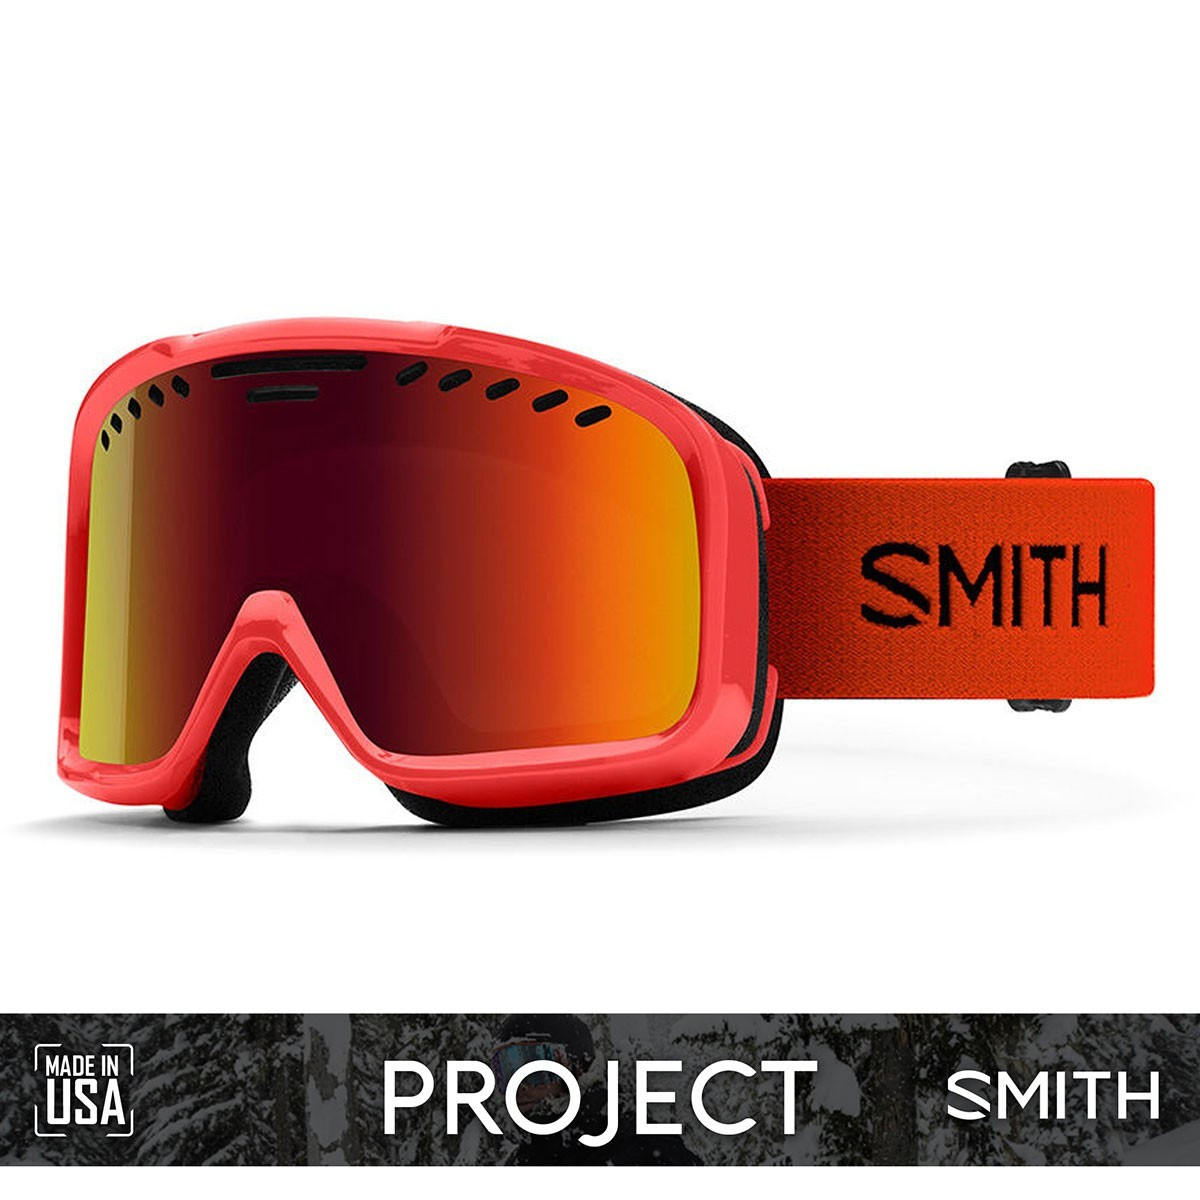 SMITH PROJECT Rise | S3 RED SOL-X Mirror - Изображение - AQUAMATRIX